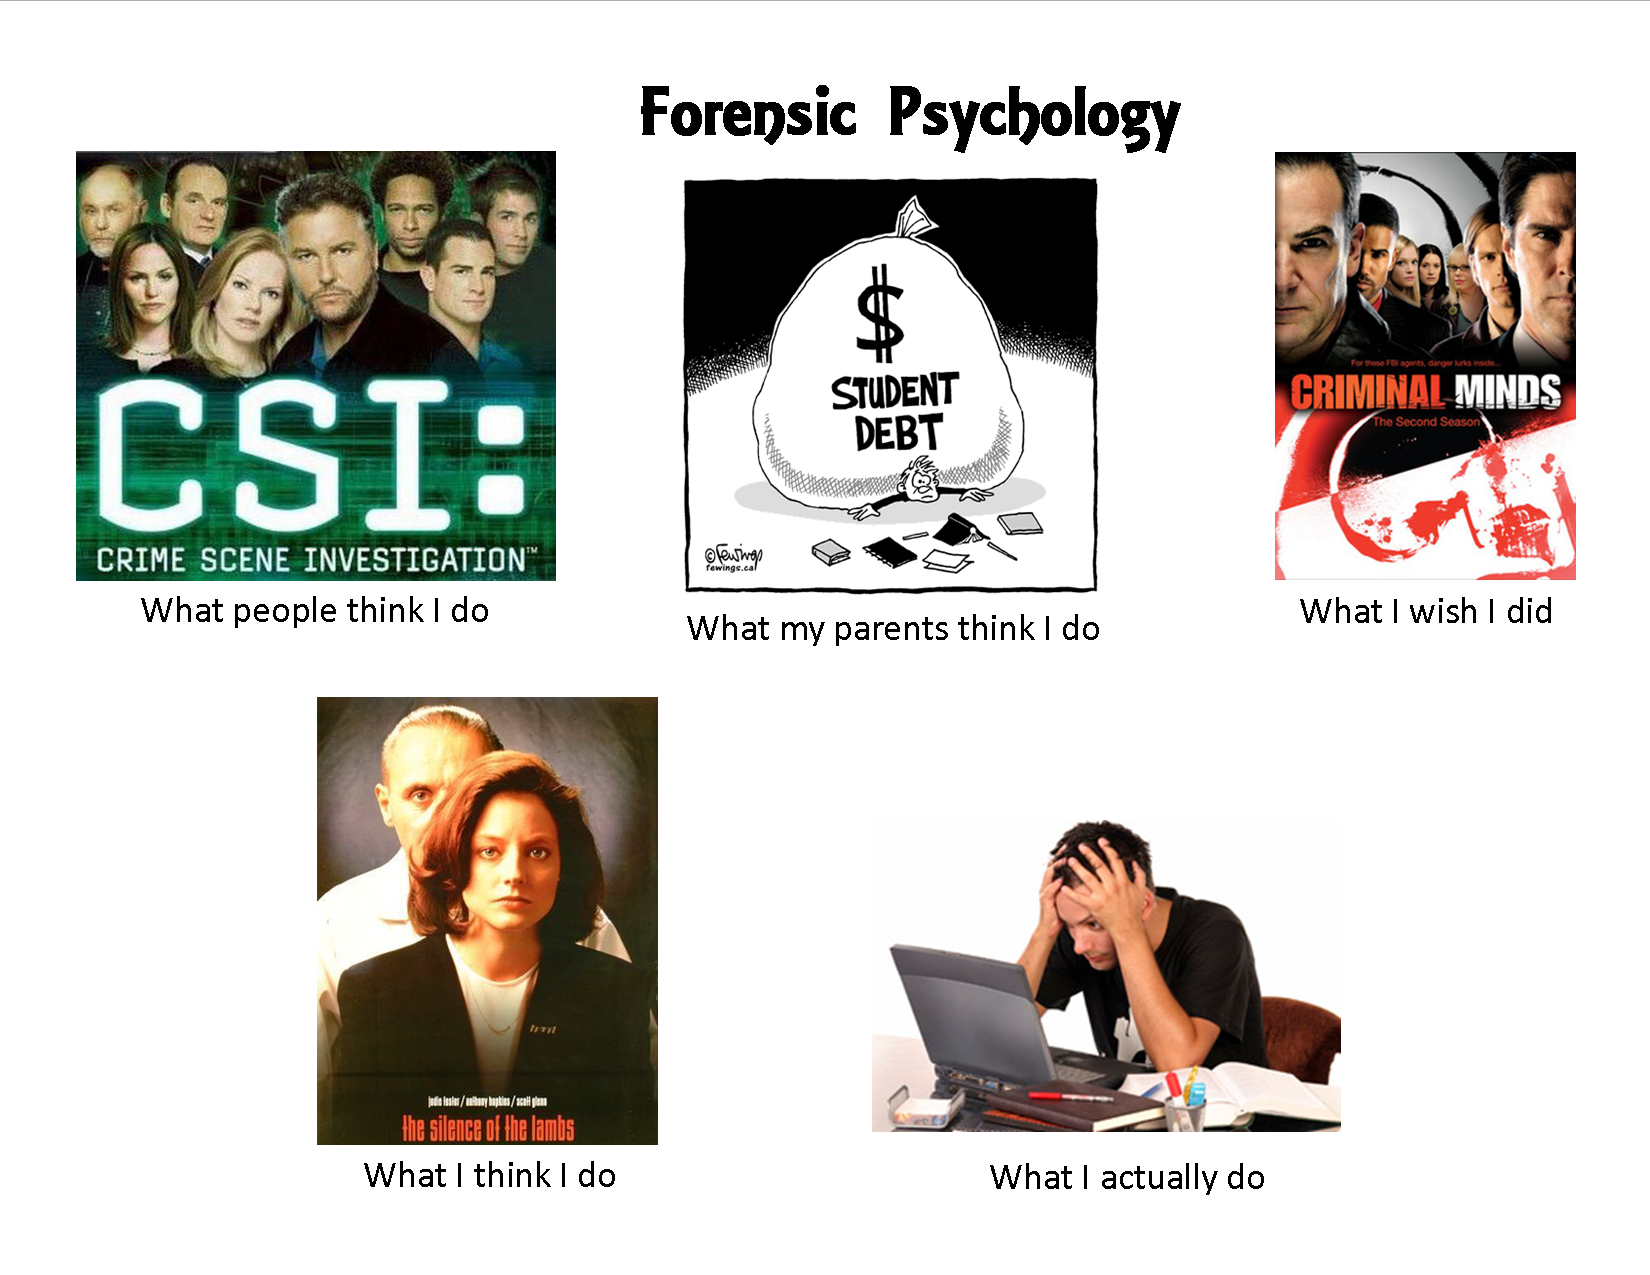 forensic psychology dissertation Learn how to write an effective and error free forensic psychology dissertation by following our expert advice and tips.